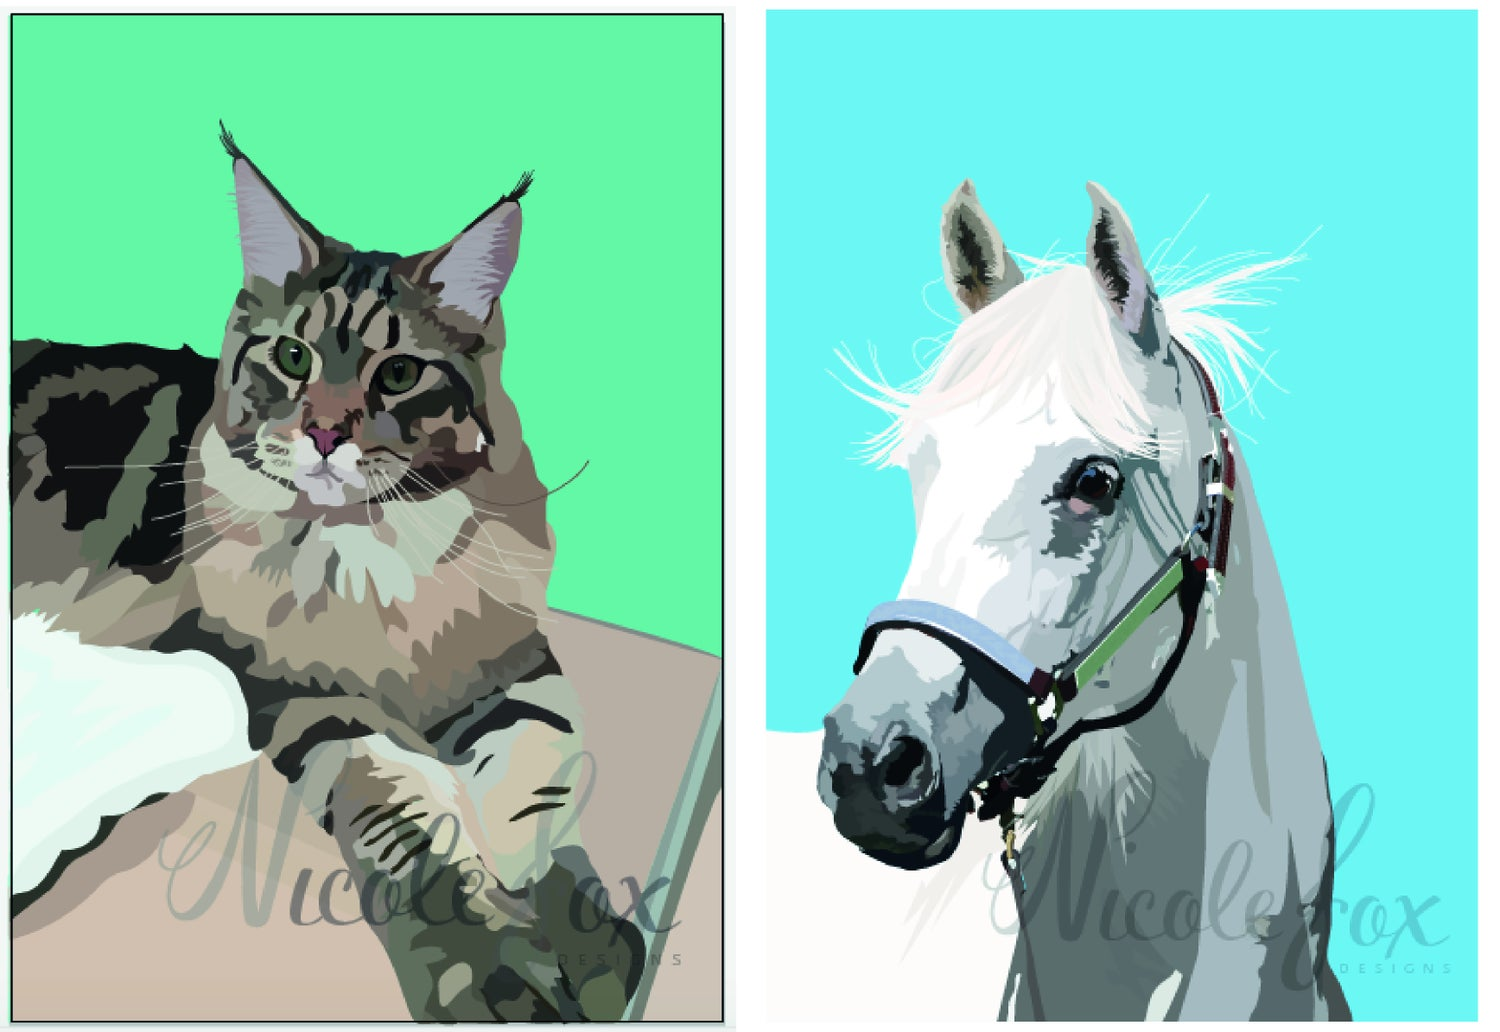 Maine Coon Cat or White Horse Design